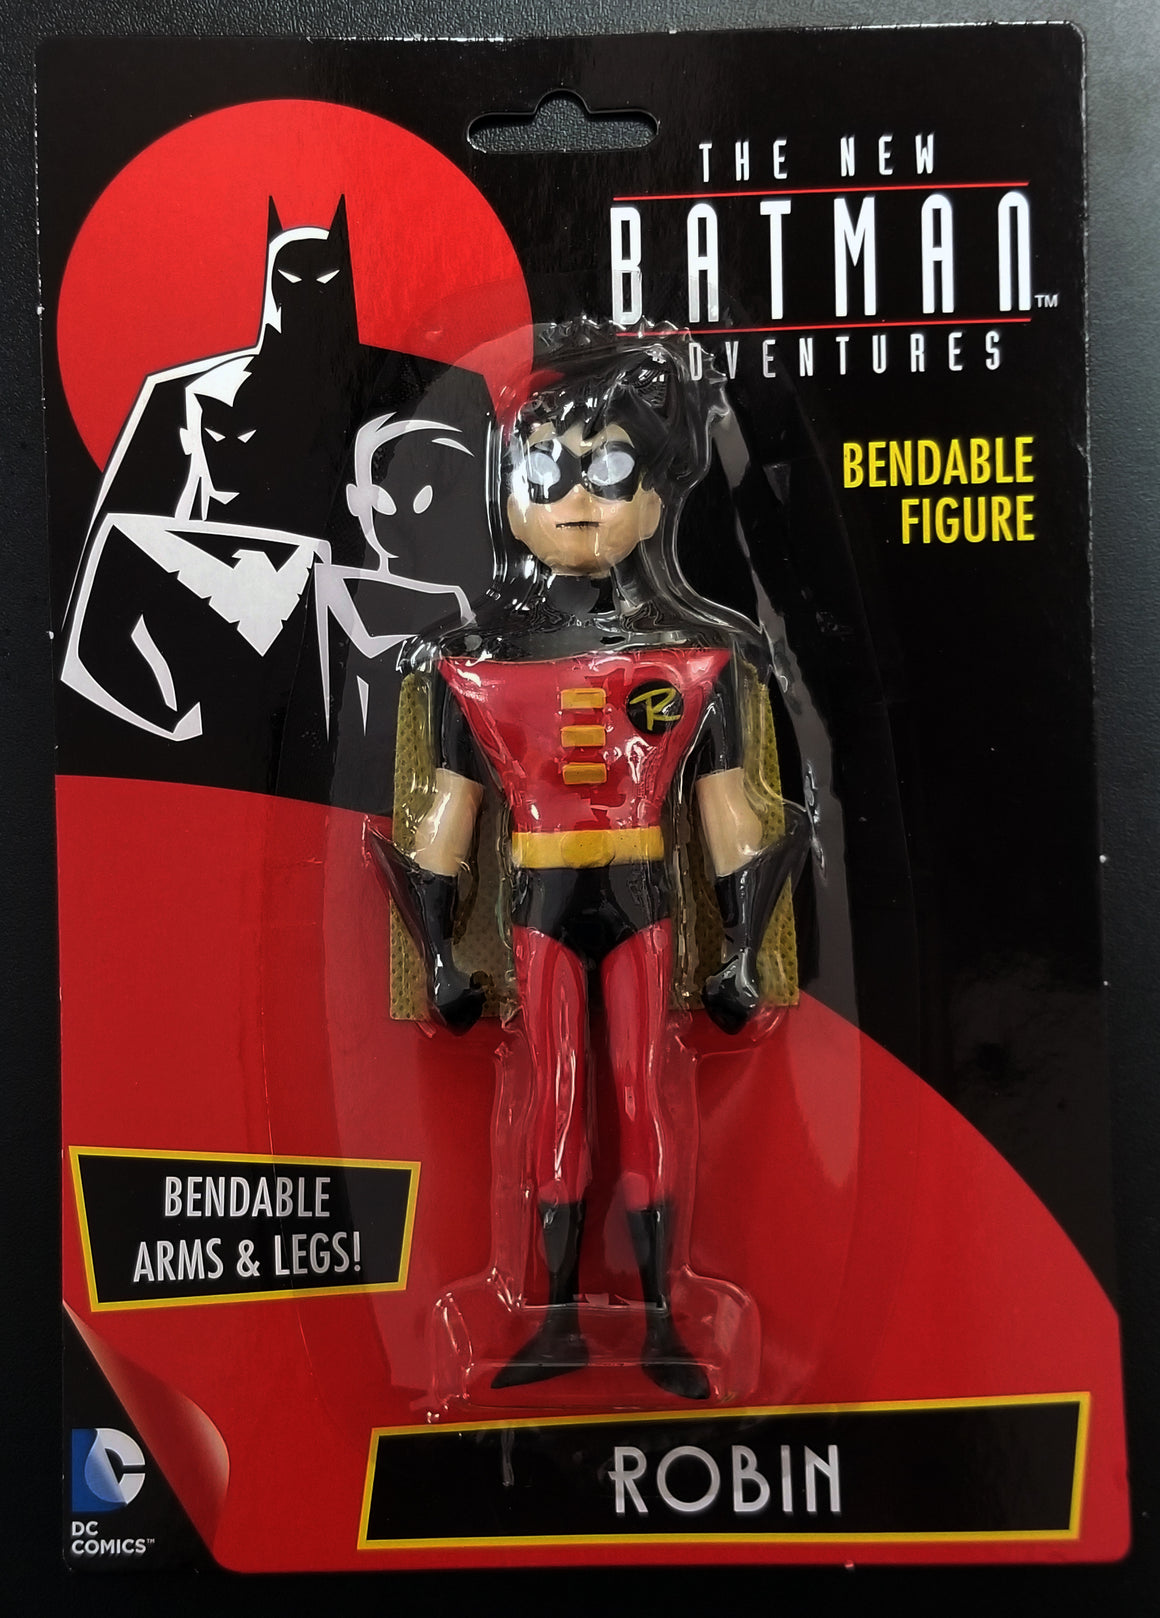 Robin Bendable Figure from The New Batman Adventures